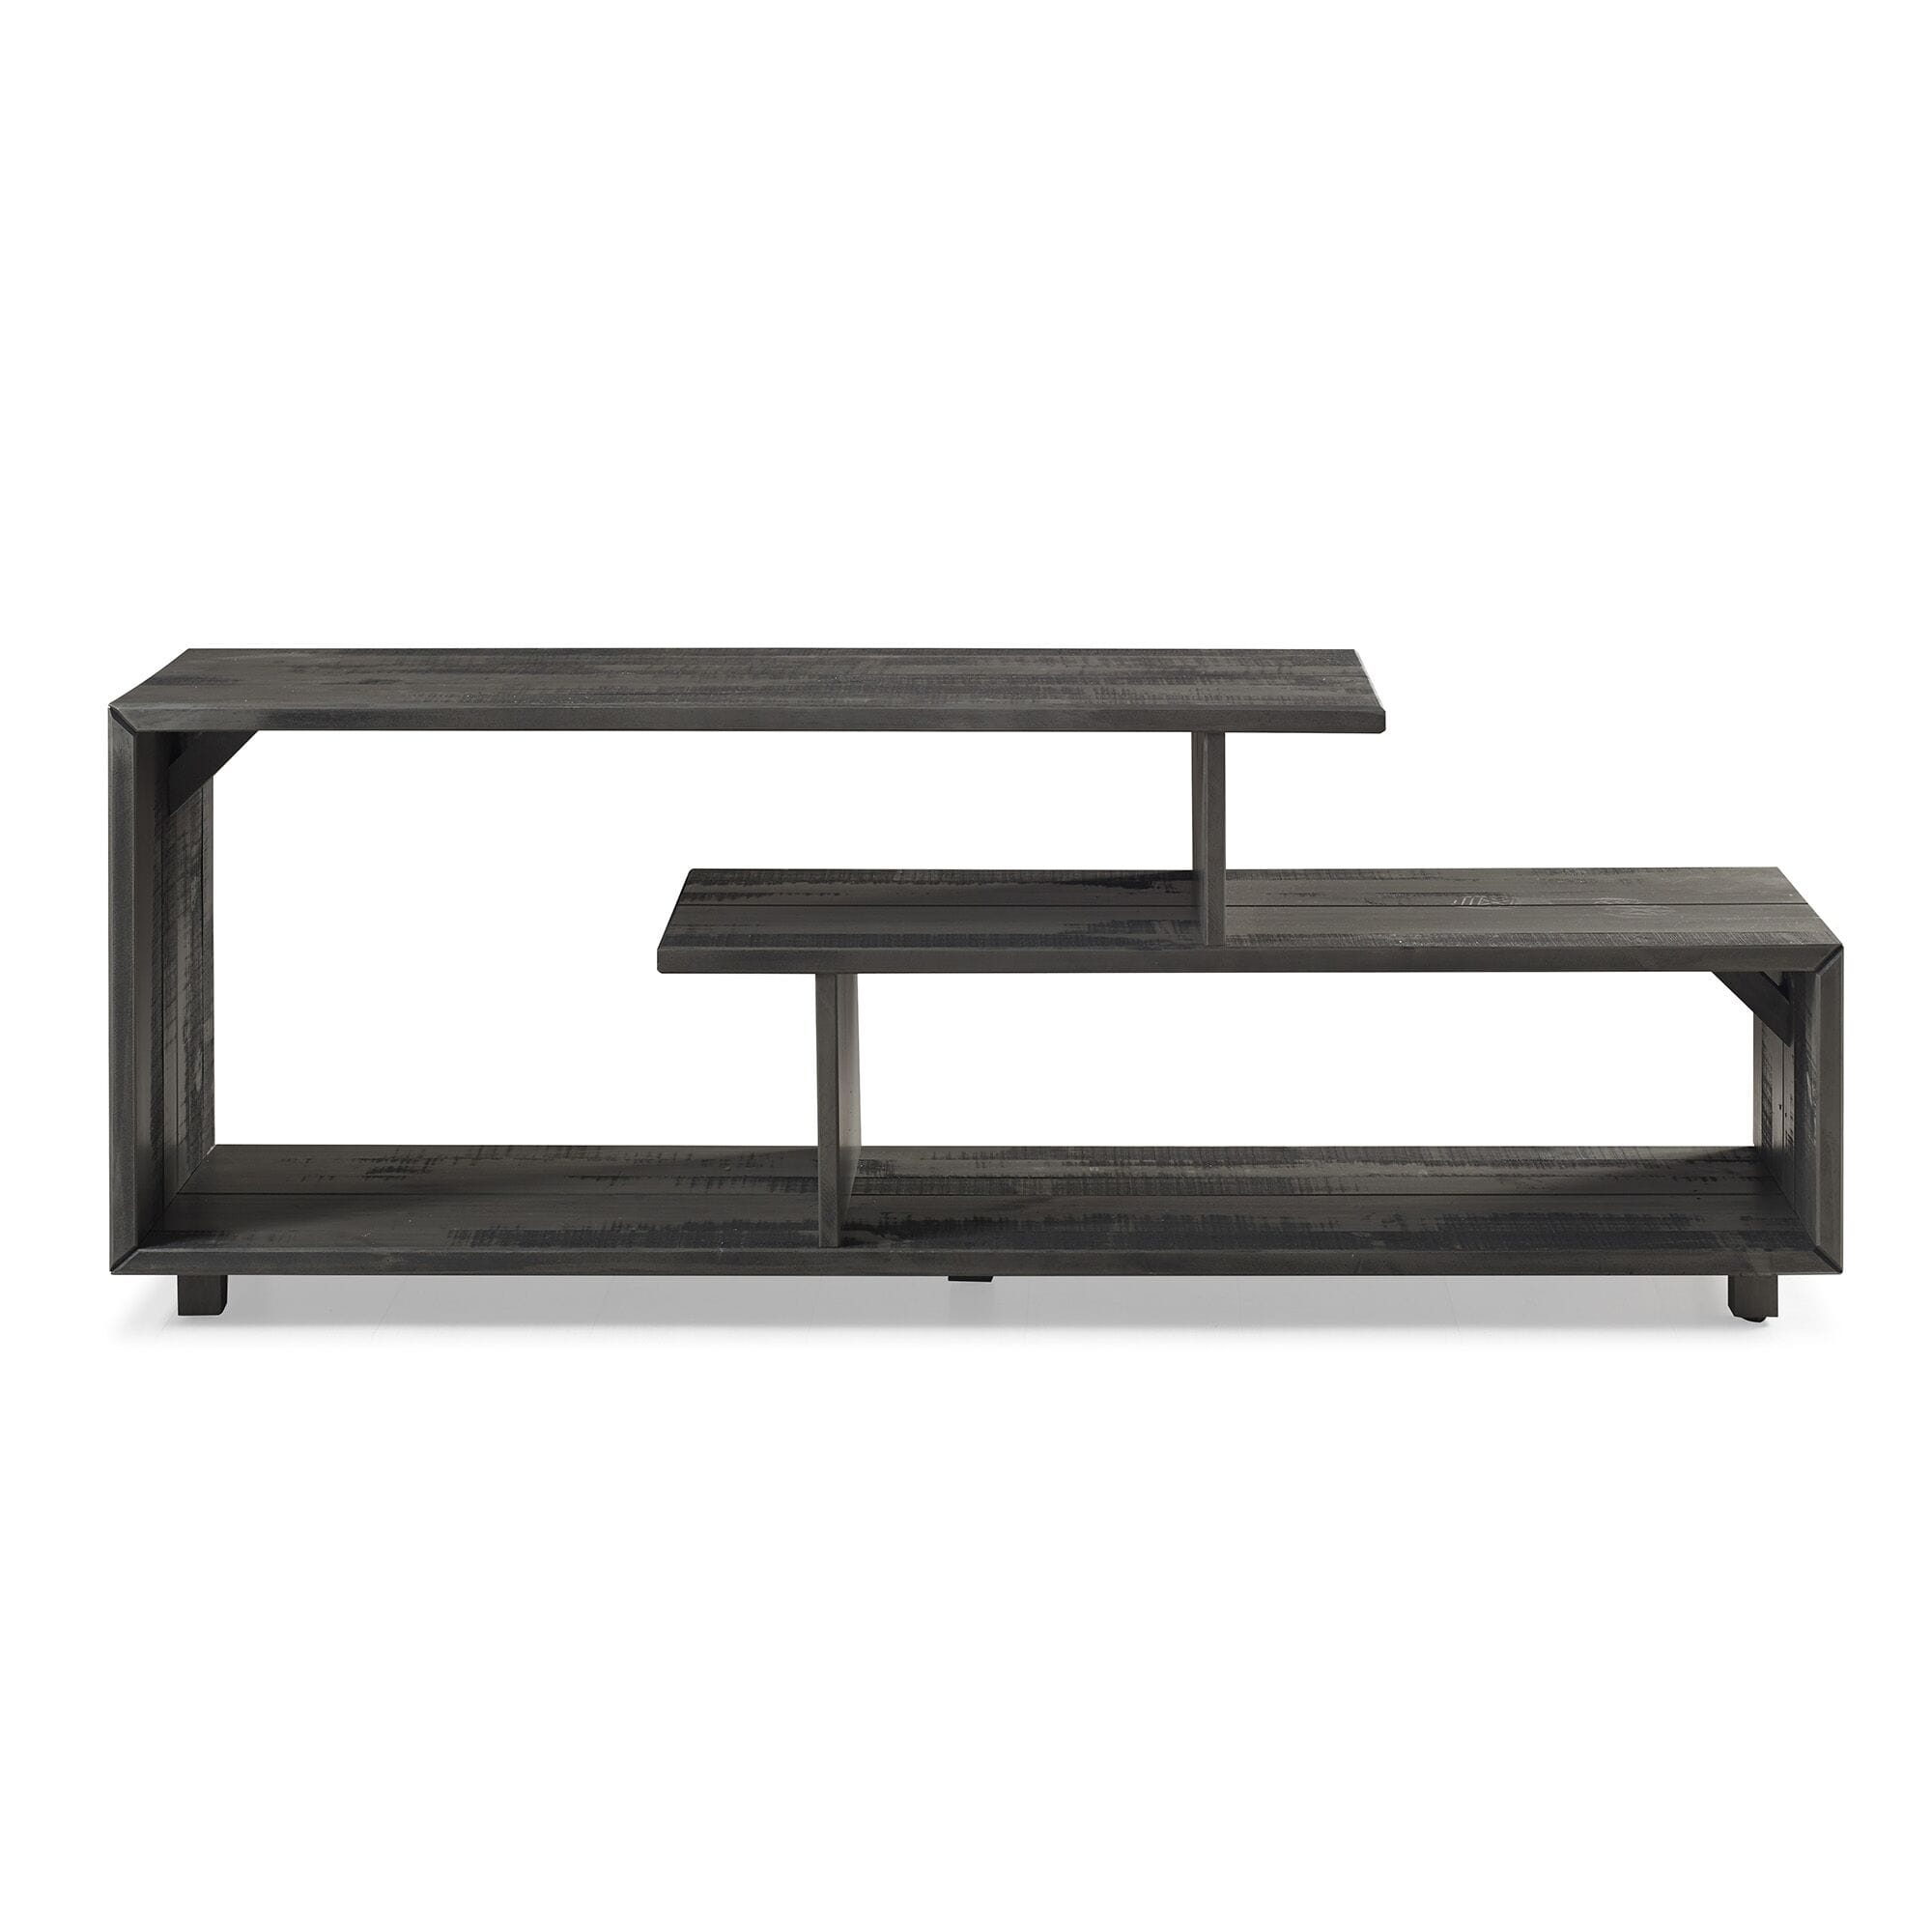 60 Inch Rustic Modern Solid Wood Tv Stand Grey By Walker Edison